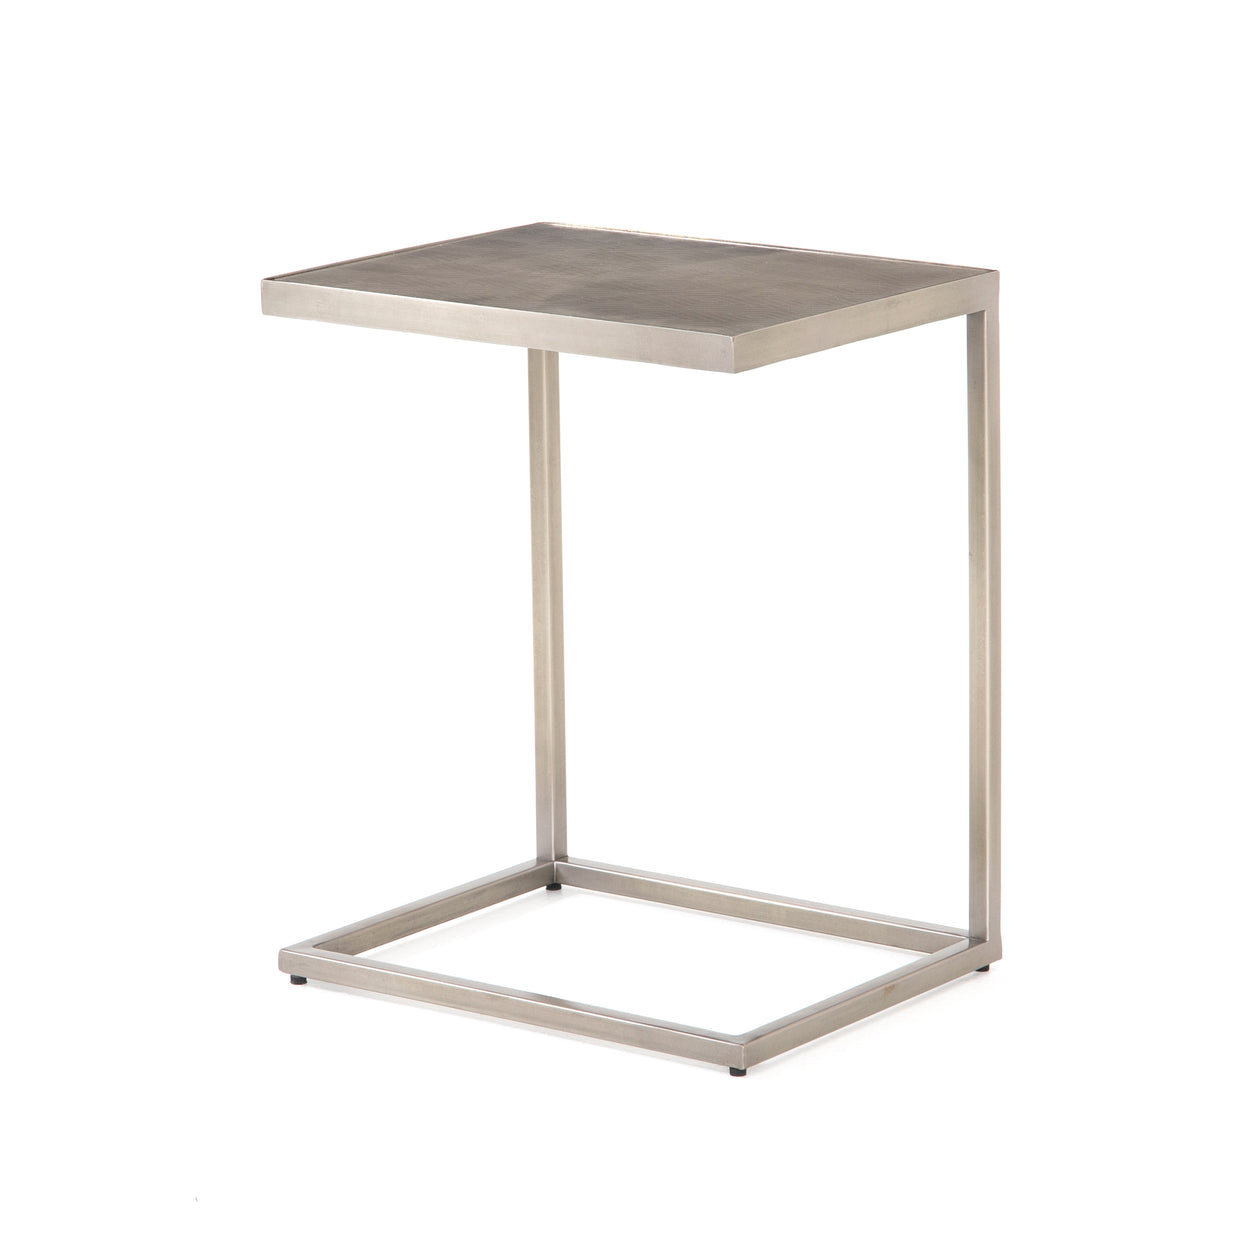 Cutler C Table